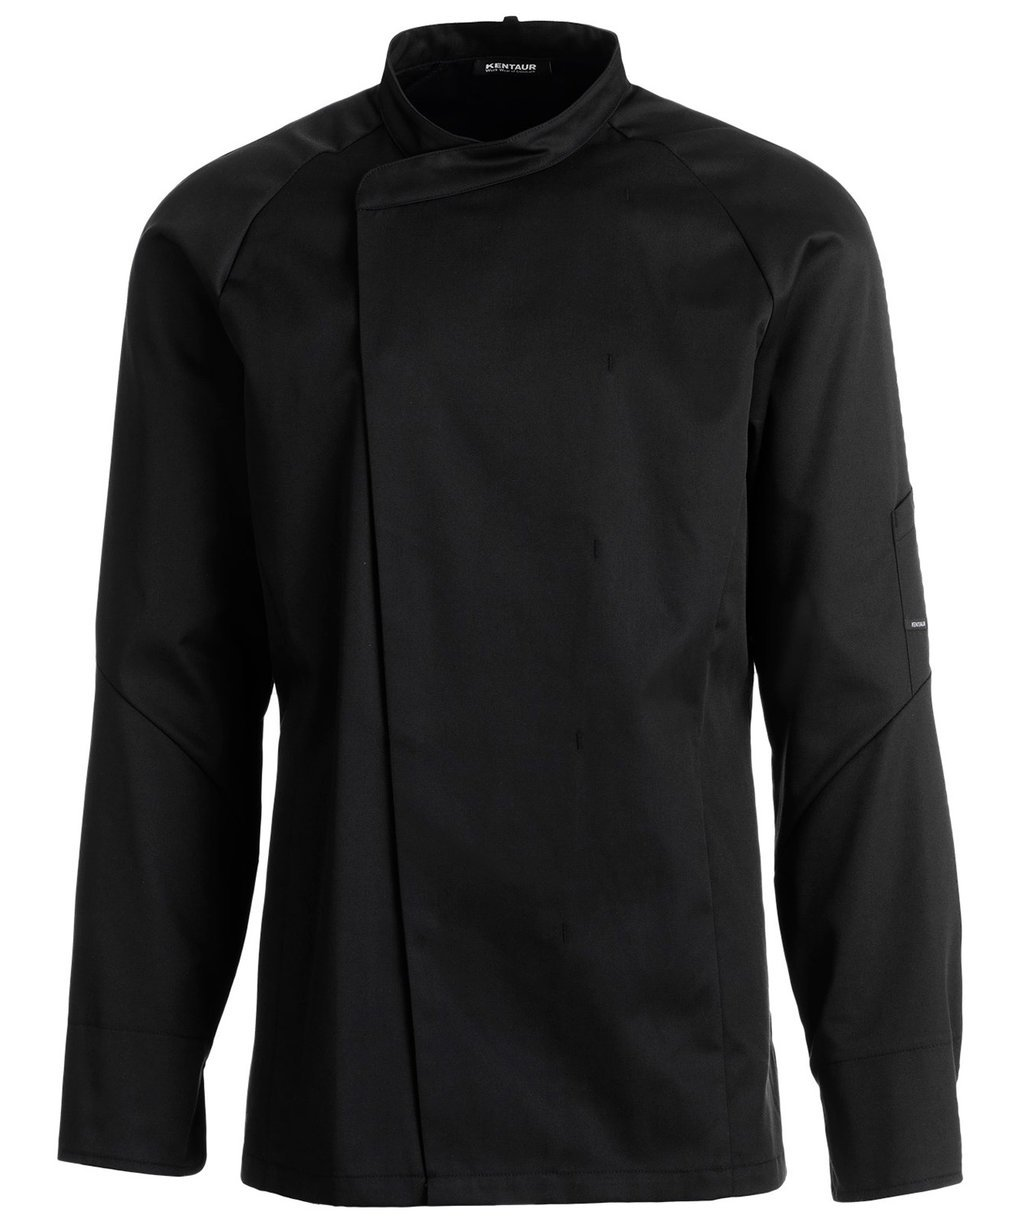 Kentaur unisex chefs jacket / serving jacket, Black